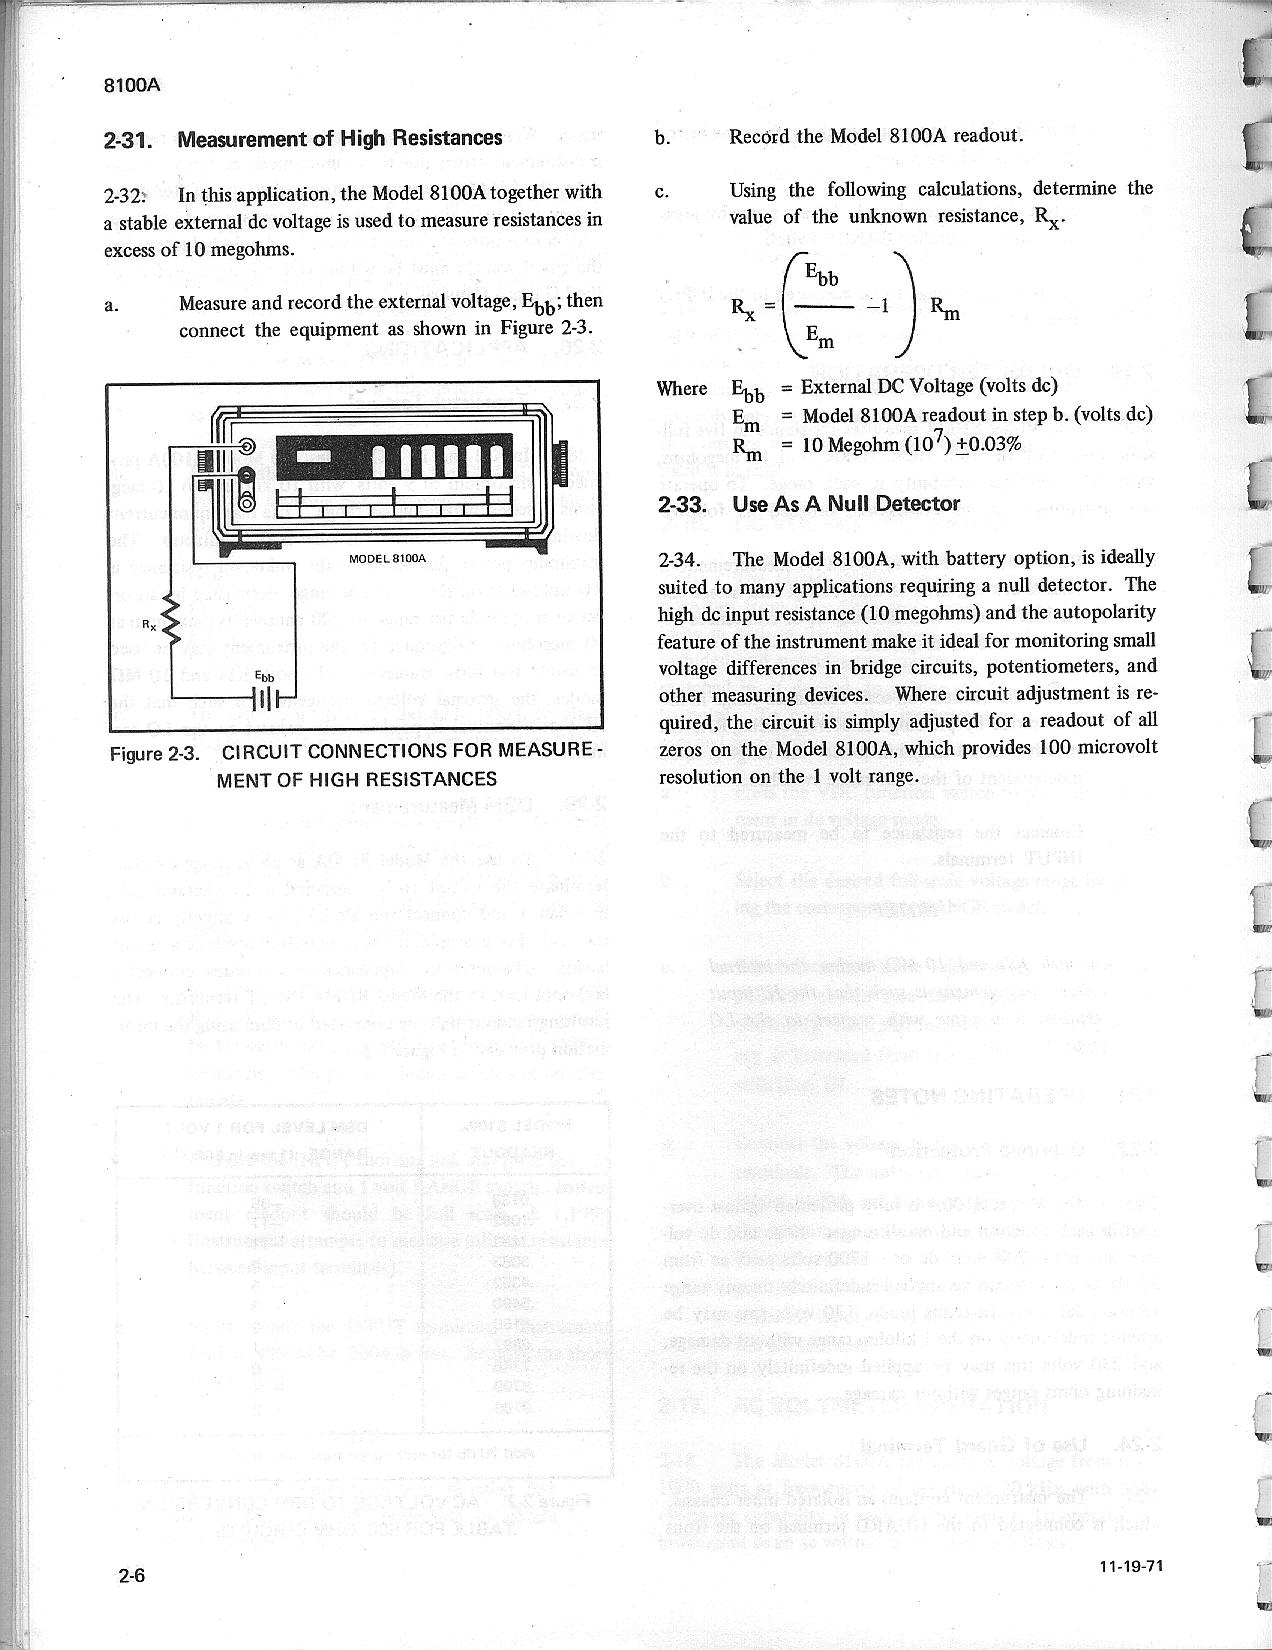 Fluke 8100a And 8100b Schematics Manual External Schematic This Is The Of Connections 2 6